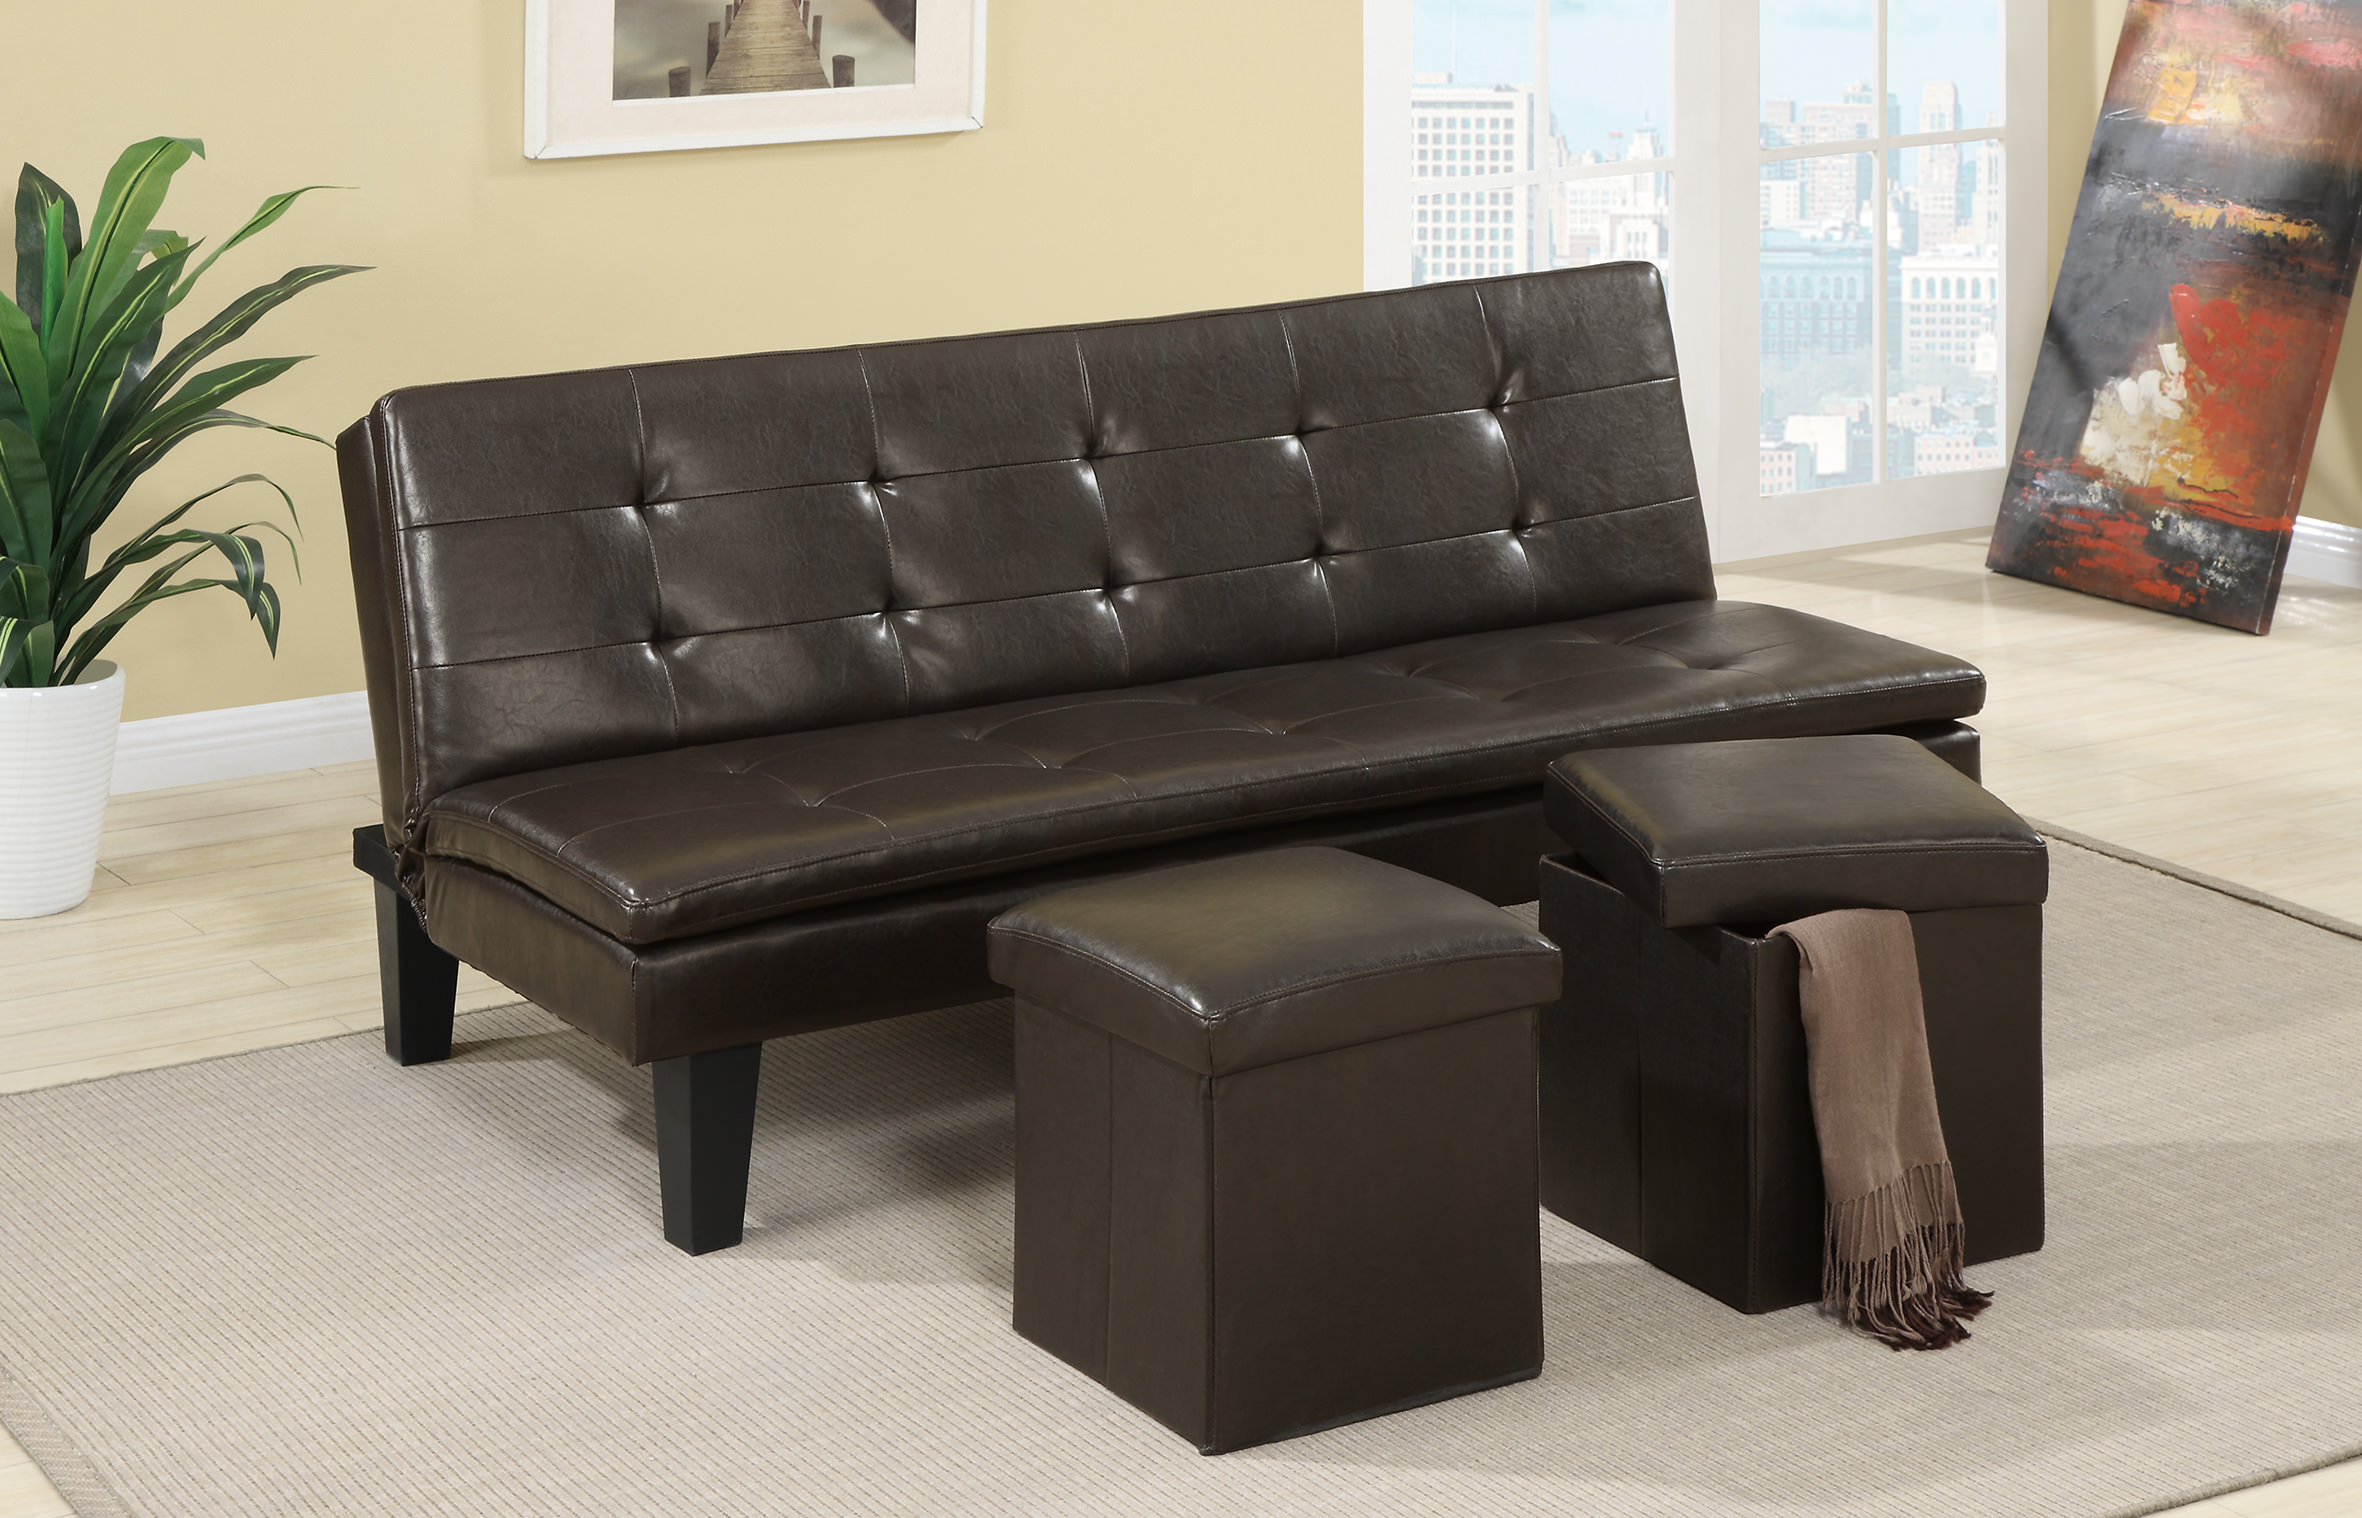 F7199 Espresso Convertible Sofa Bed With 2 Pcs Ottoman By